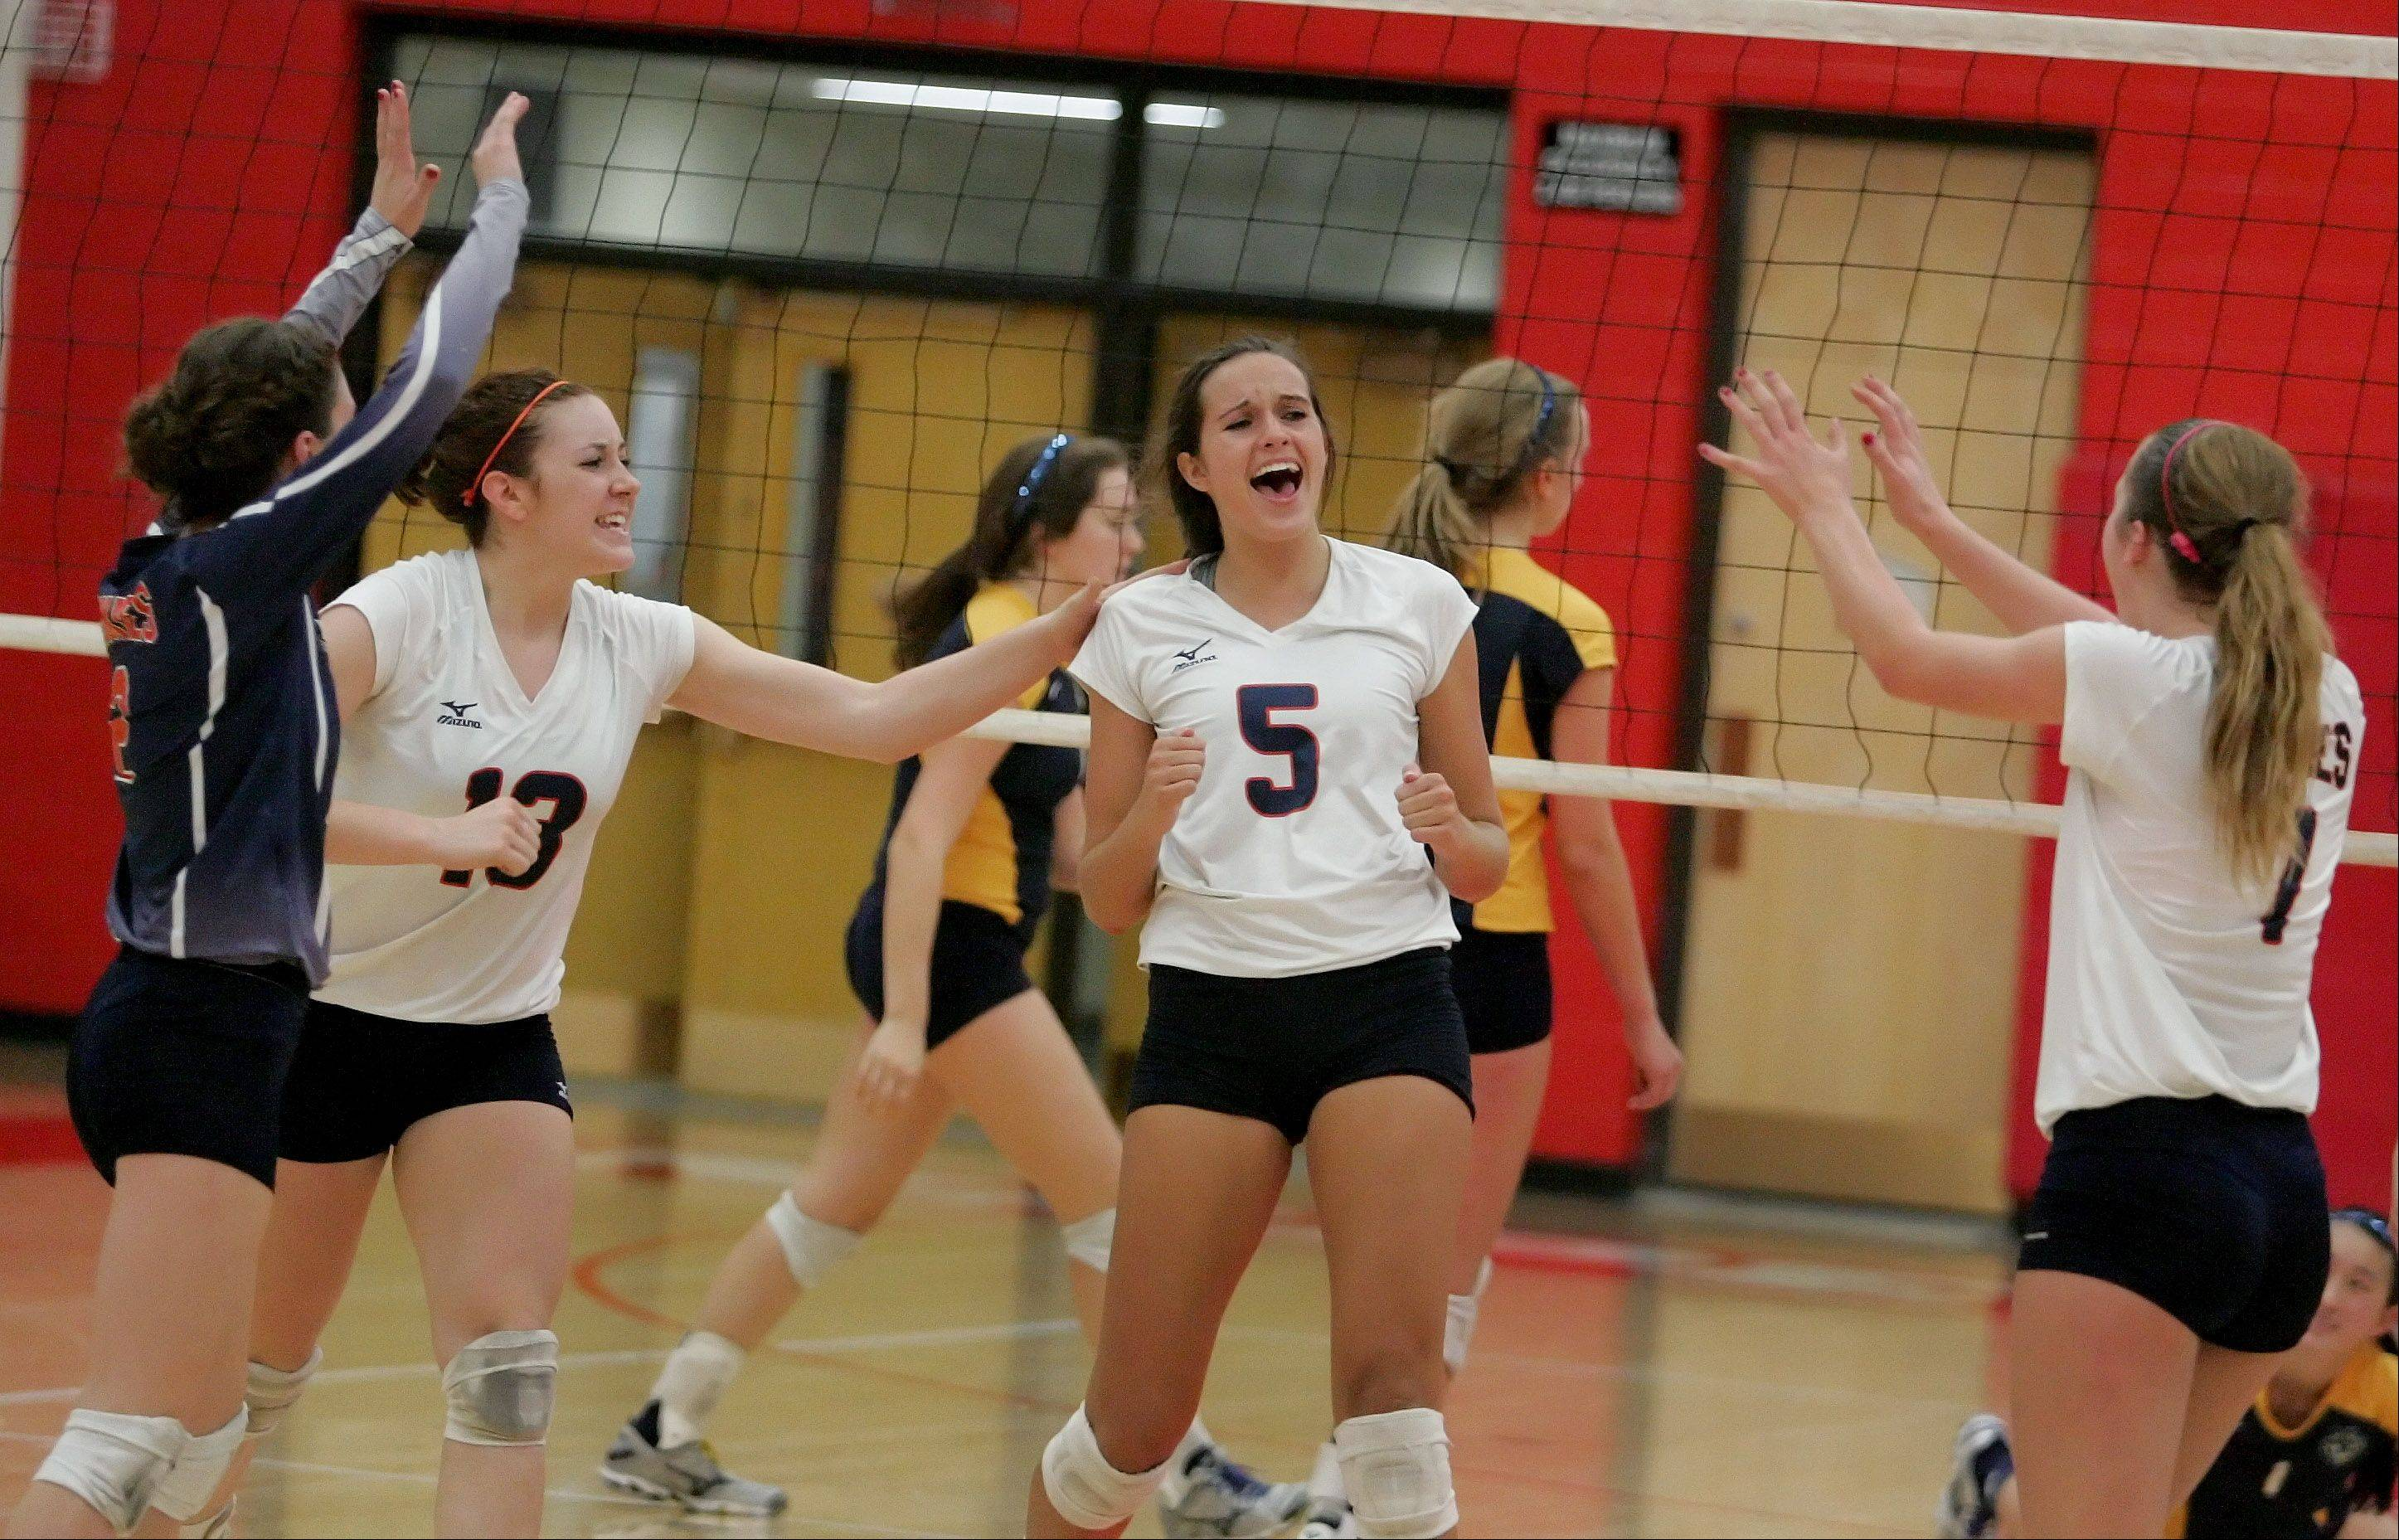 Naperville North reacts to a point won in their two-game win over Neuqua Valley in Class 4A girls volleyball regional semifinals at Naperville Central on Monday.